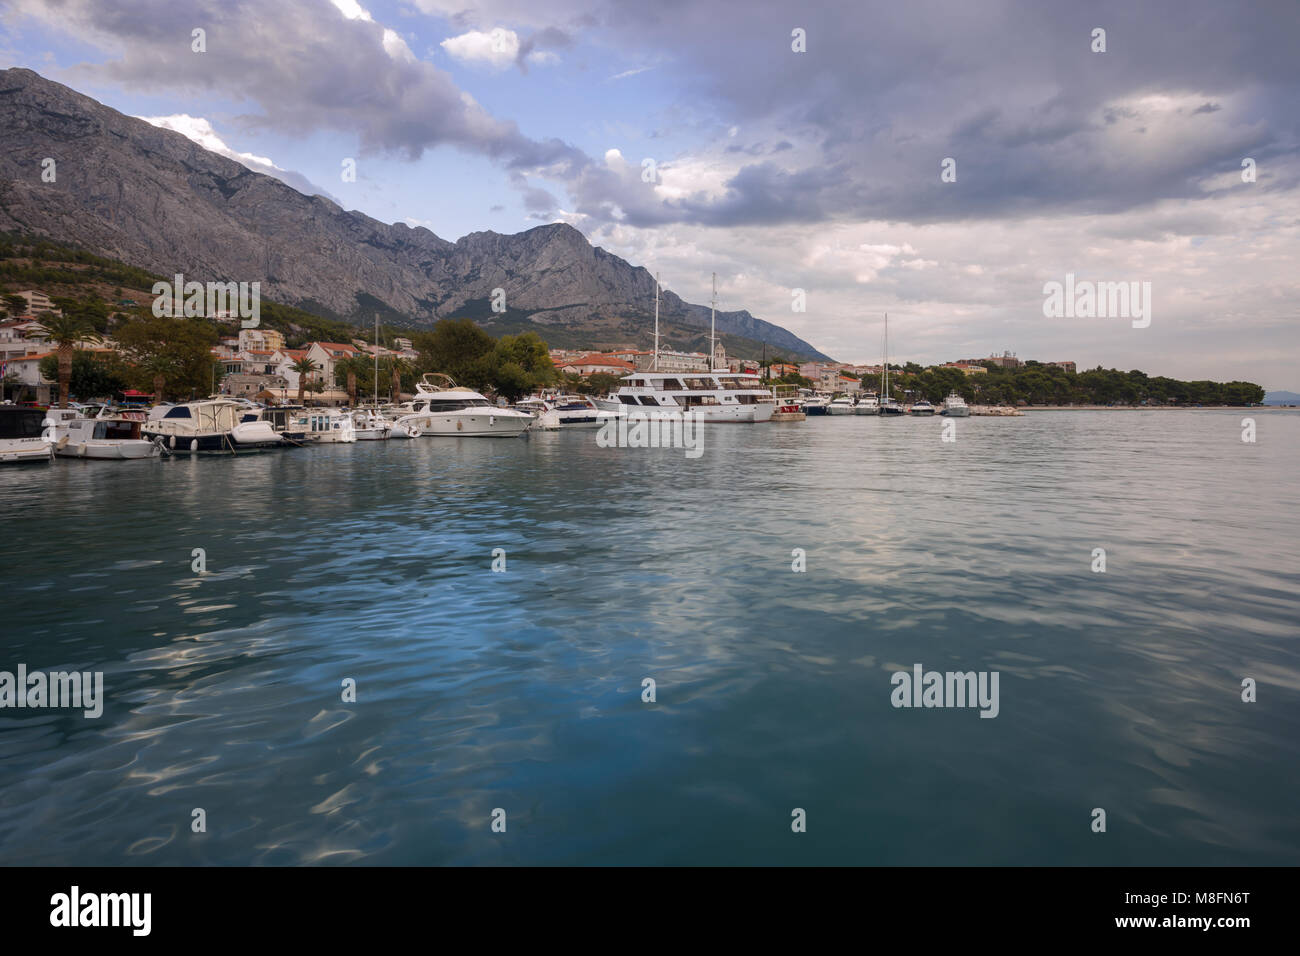 A view on a small town Baska Voda, Dalmatia, Croatia - Stock Image